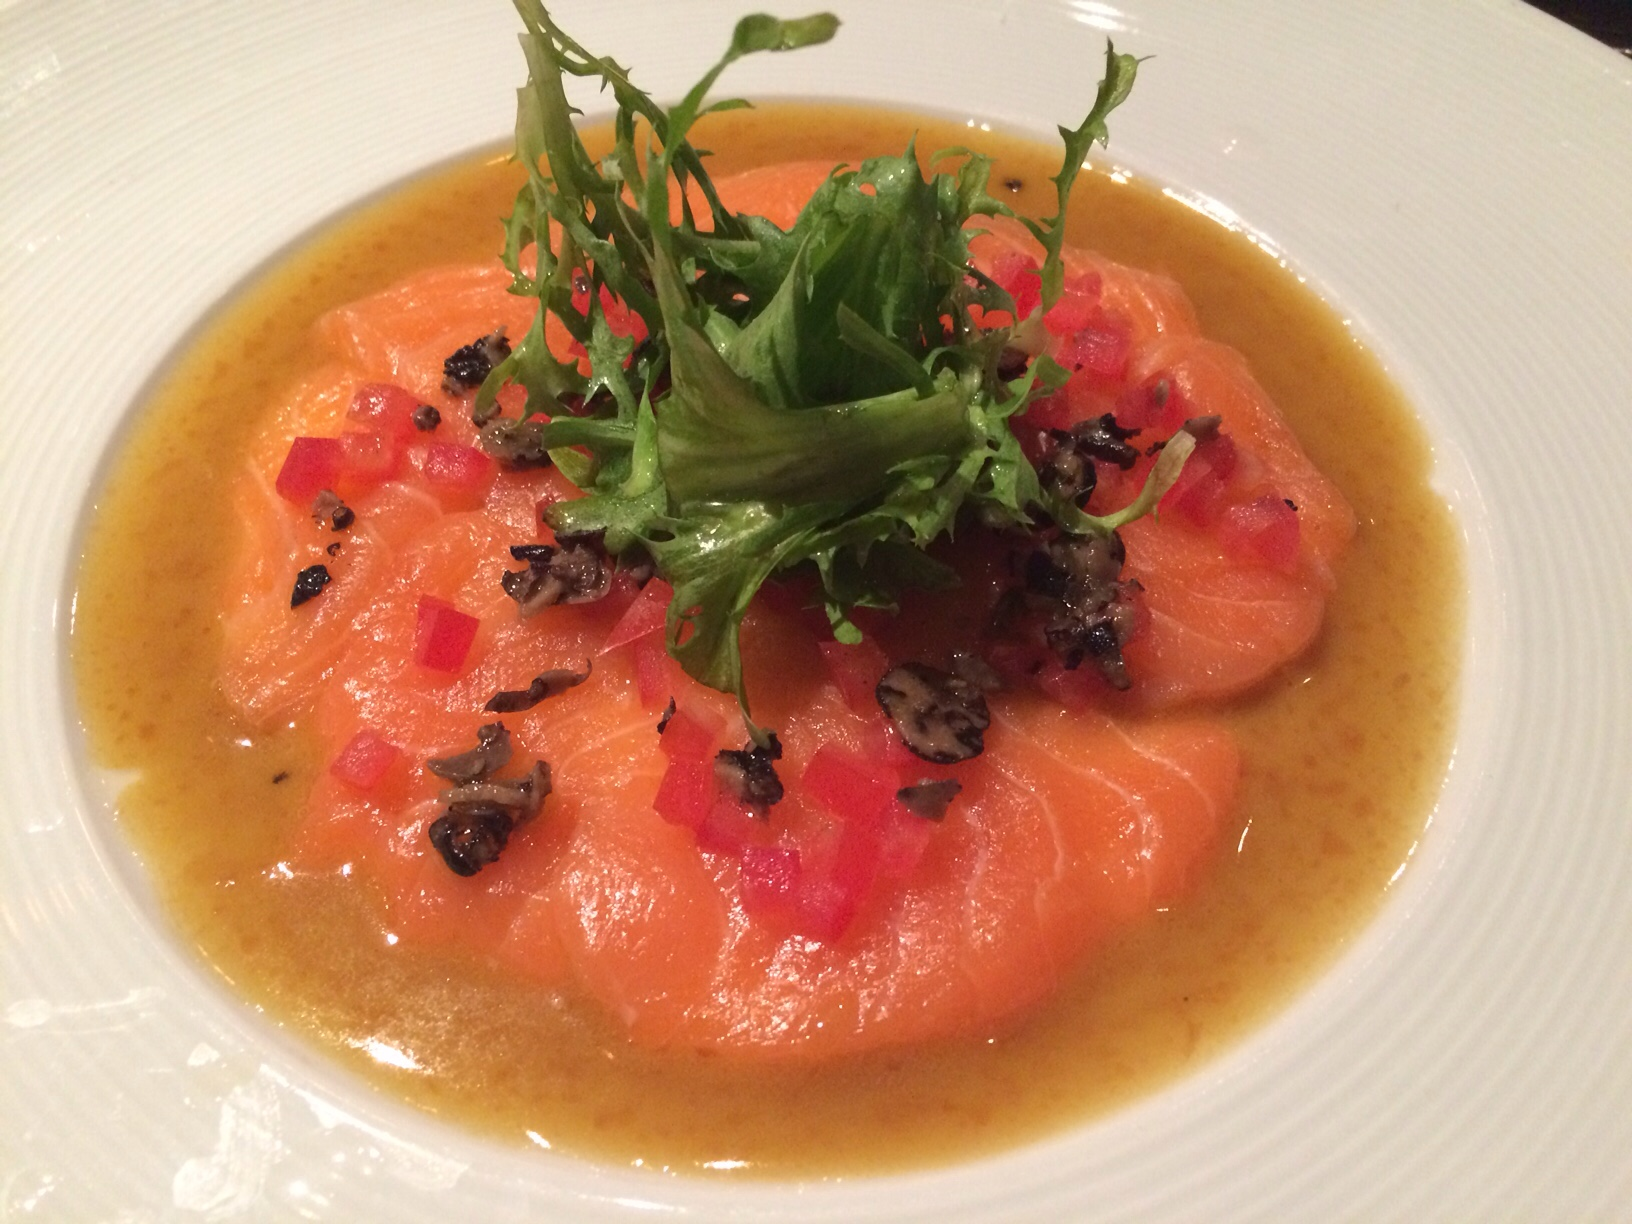 Salmon carpaccio with truffles